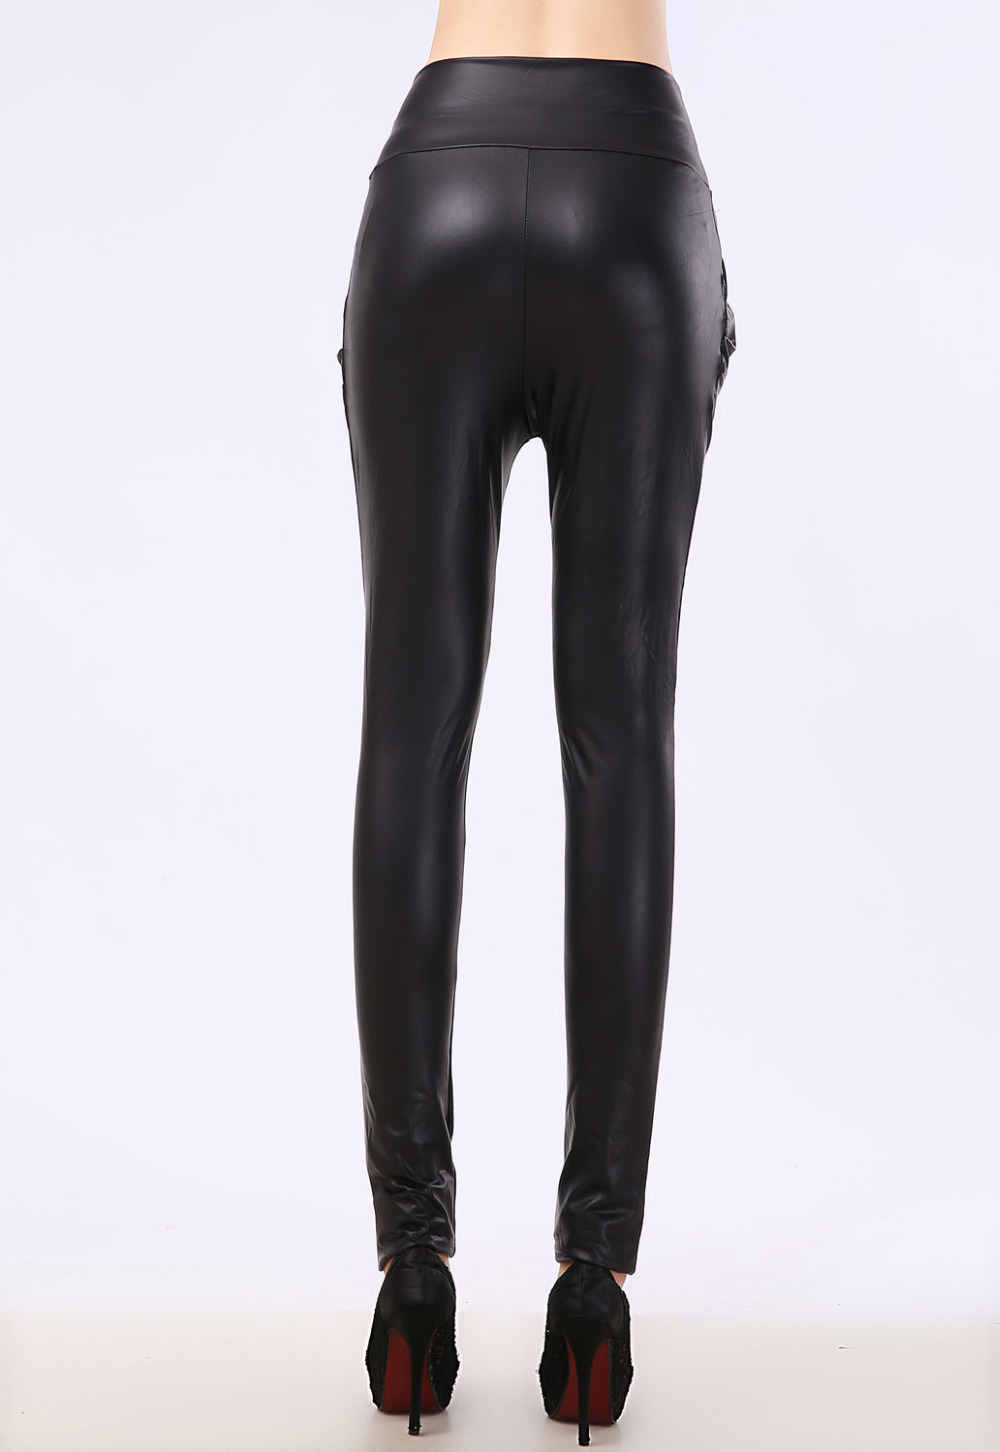 Excellent  Stylish Woman Black Leather Harem Elastic Casual Pants  Free Shipping